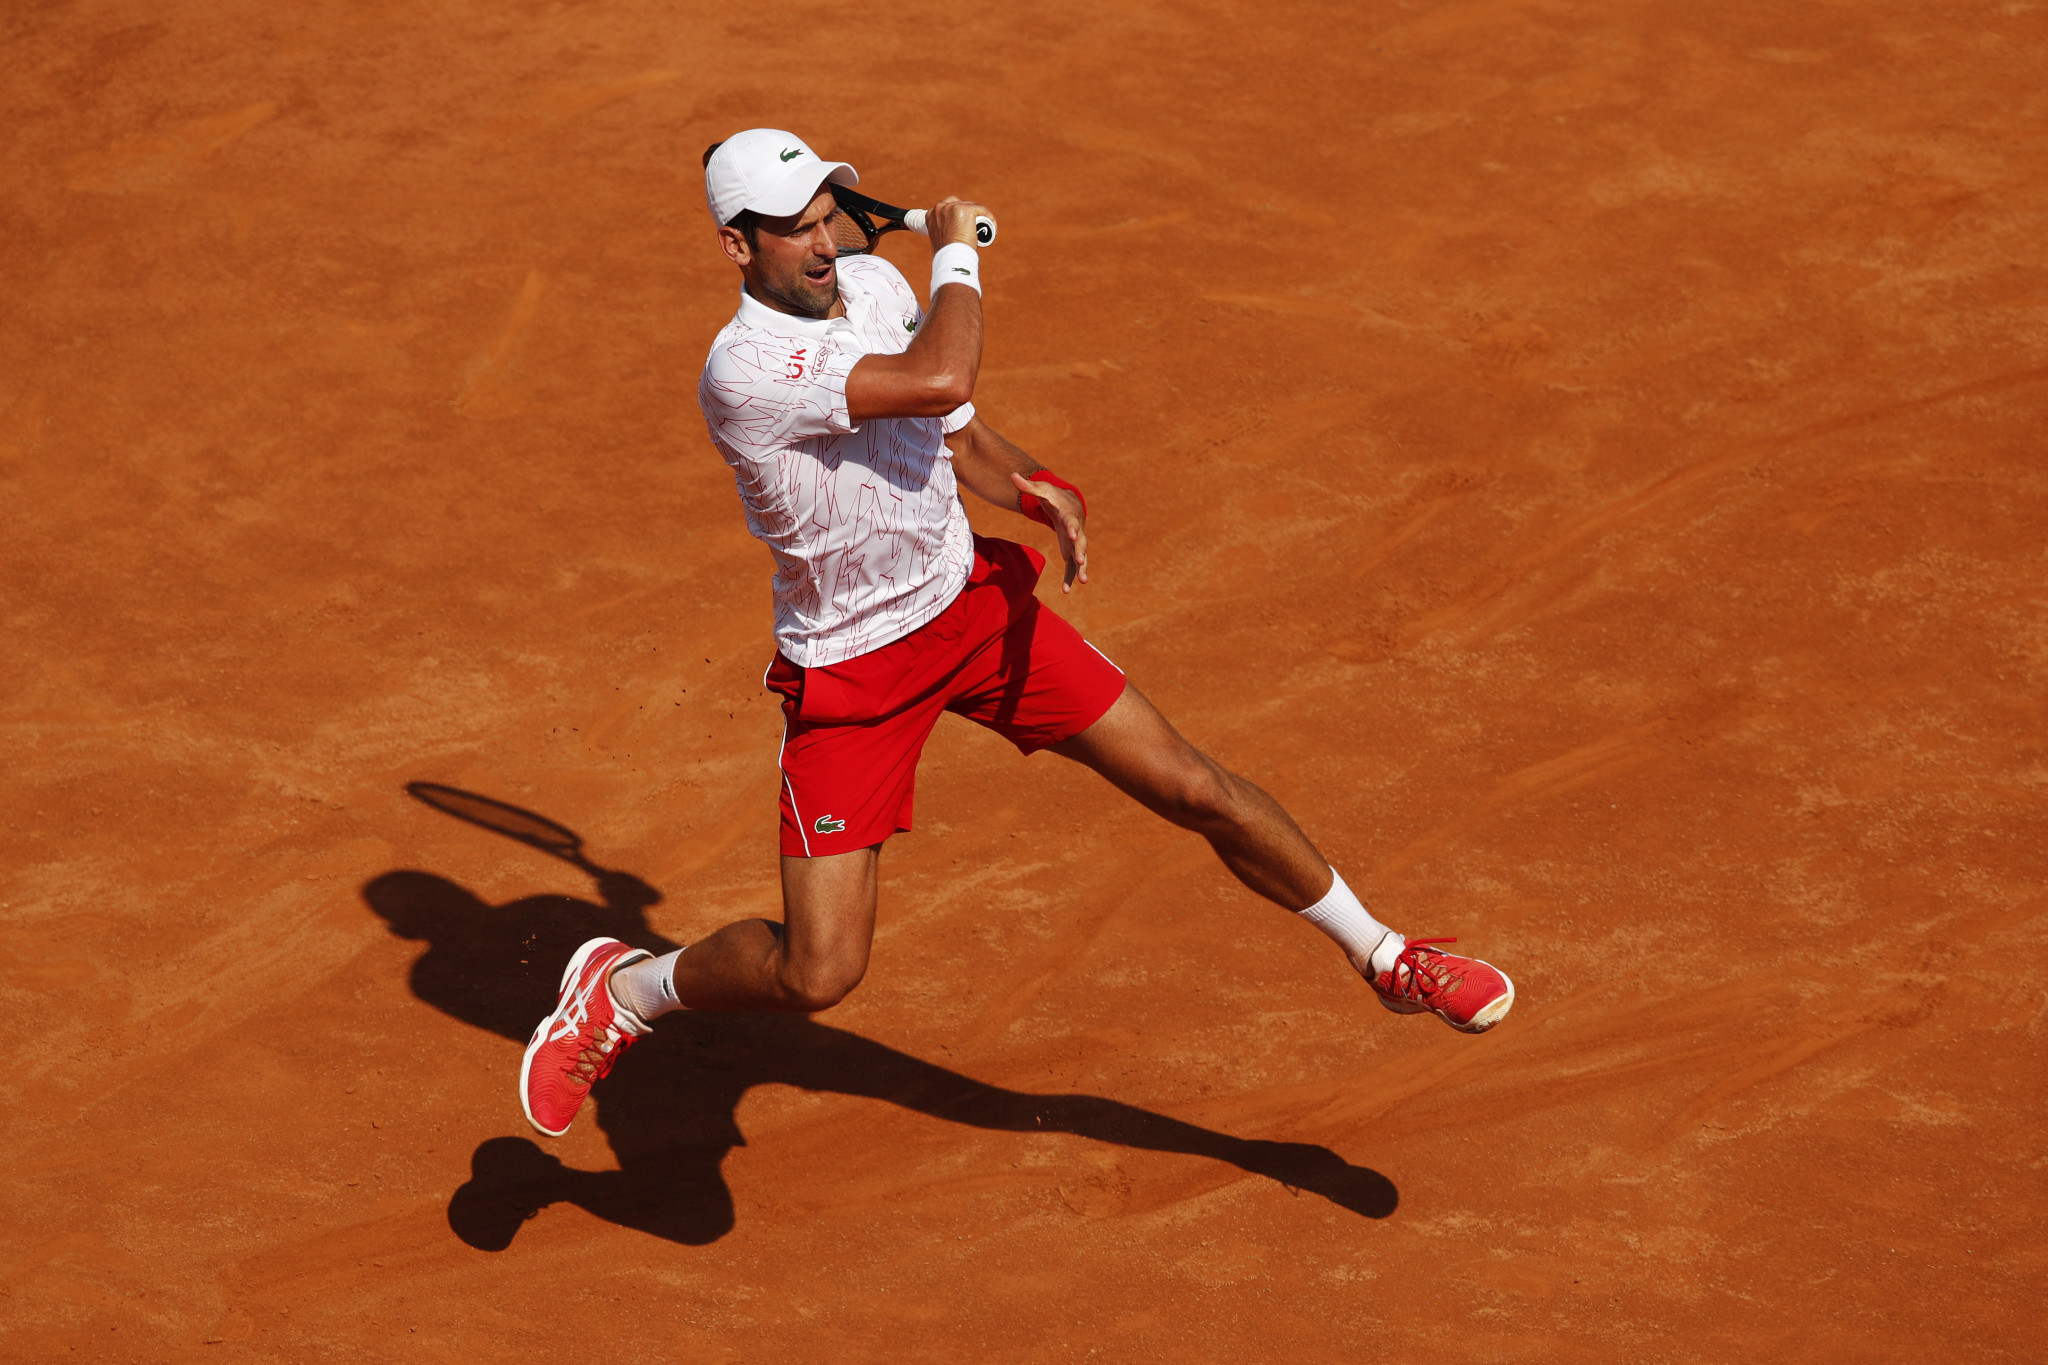 Djokovic wins first match since US Open disqualification as top seeds victorious in Rome